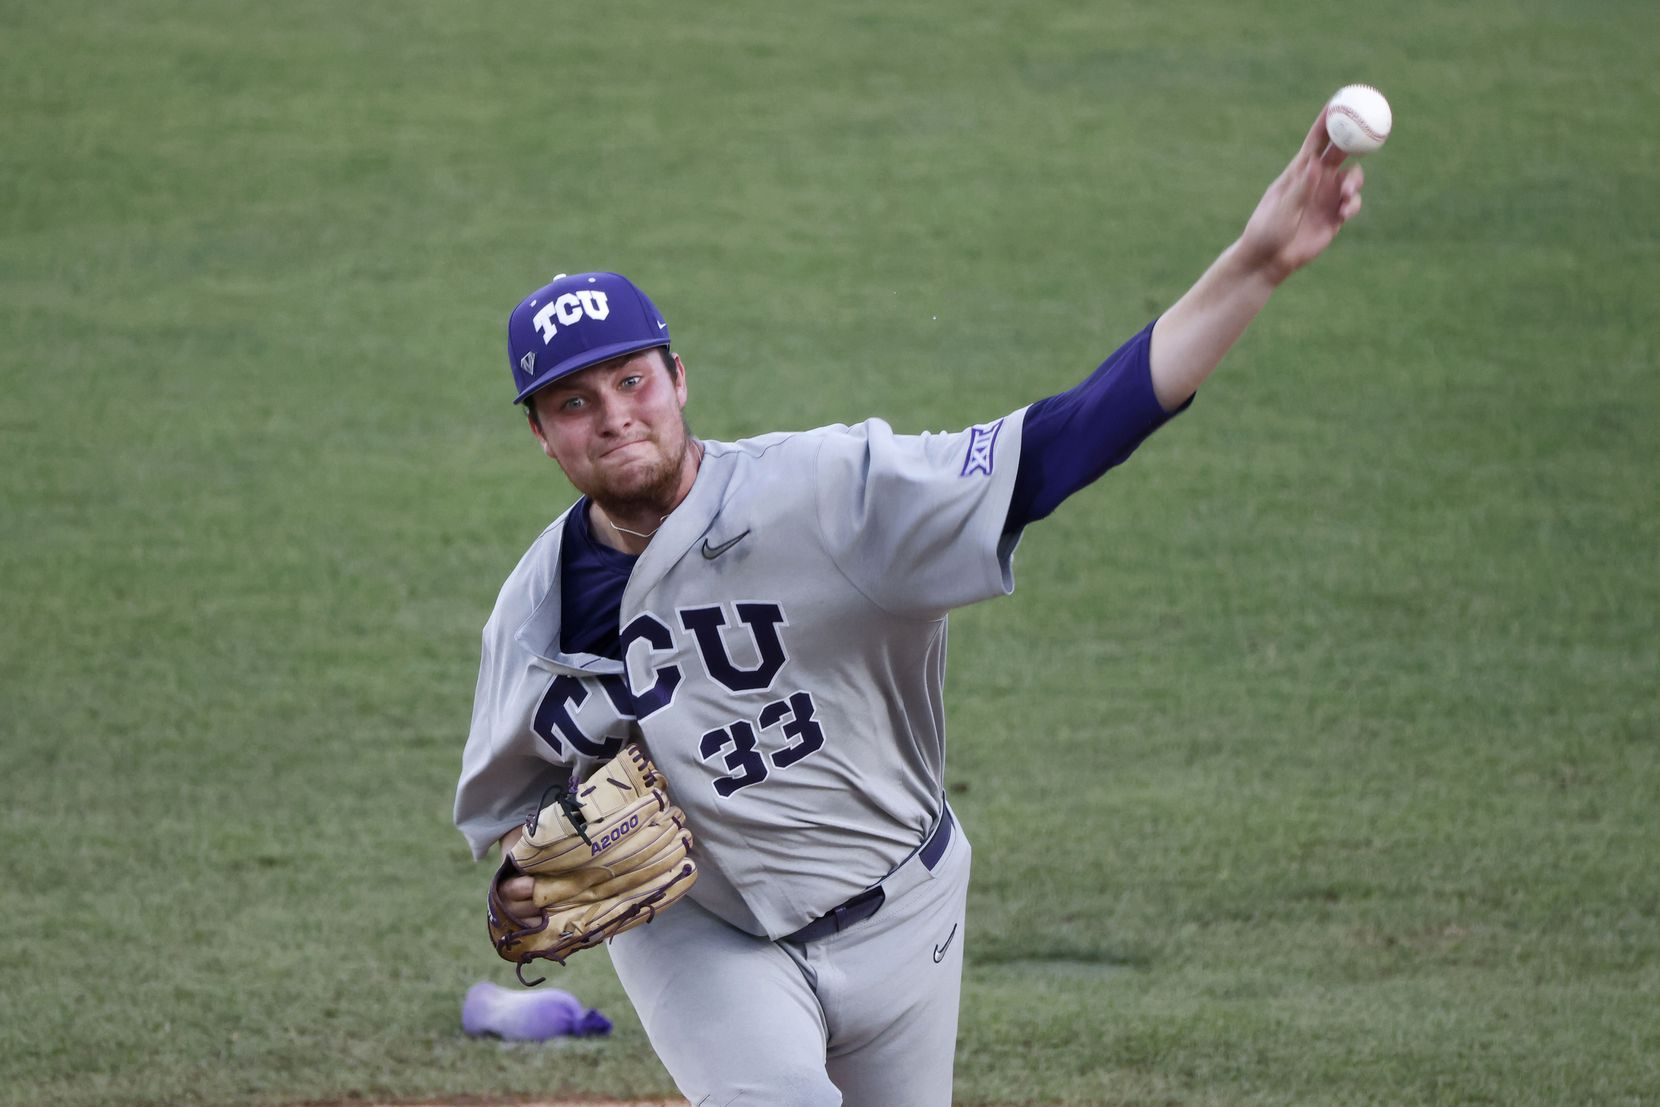 TCU pitcher Russell Smith (33) pitches against the DBU during the second inning of the NCAA Division I Baseball Championships in Fort Worth on June 5, 2021. (Michael Ainsworth/Special Contributor)